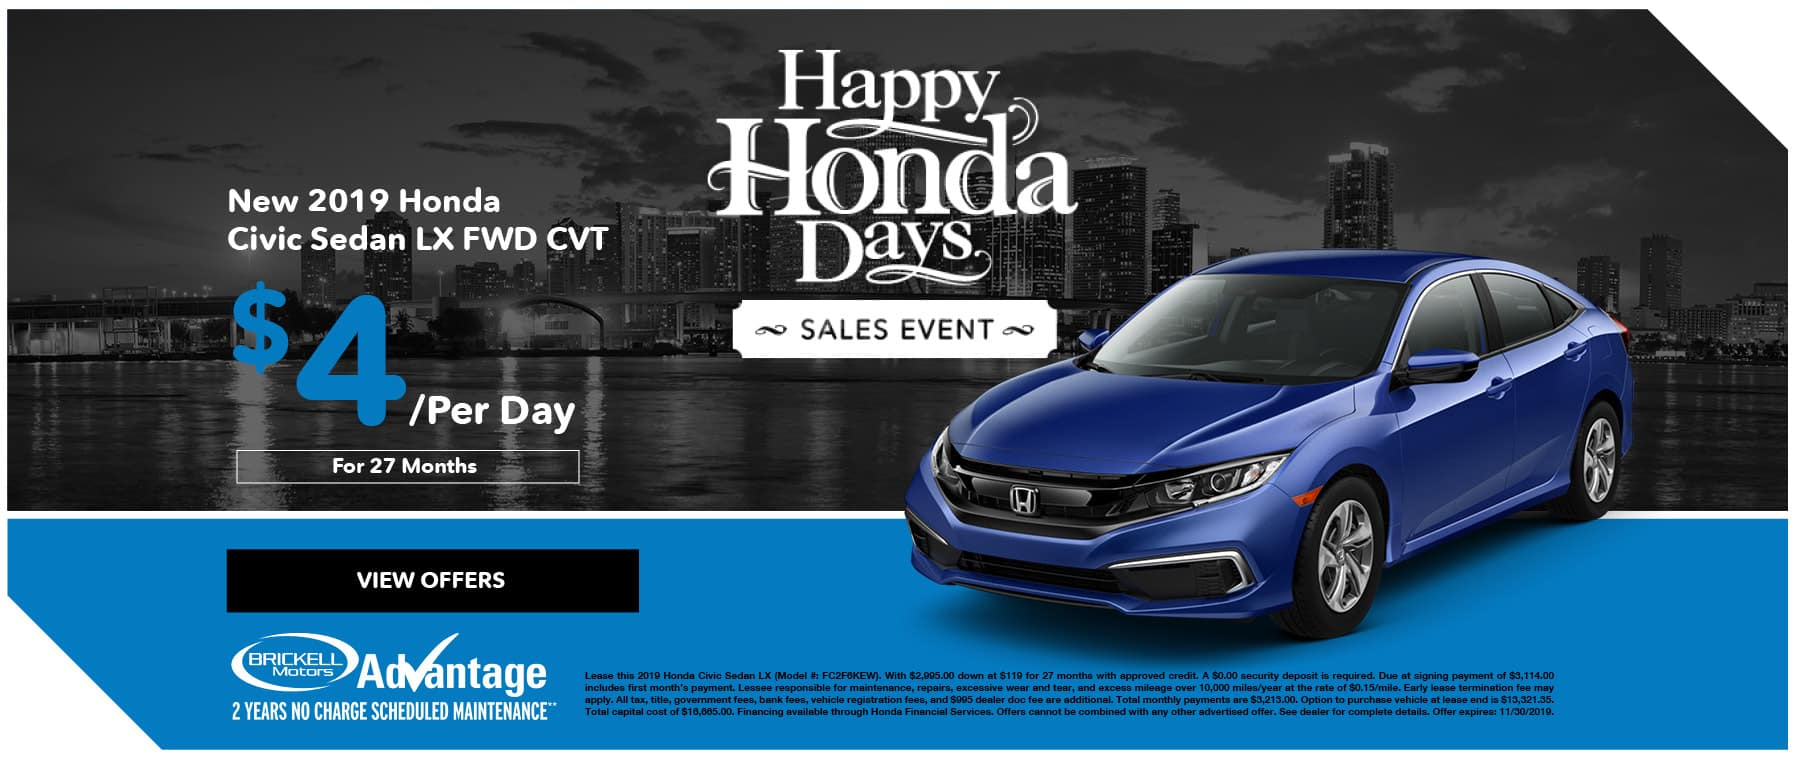 Brickell Honda Civic Special Offer Happy Honda Days